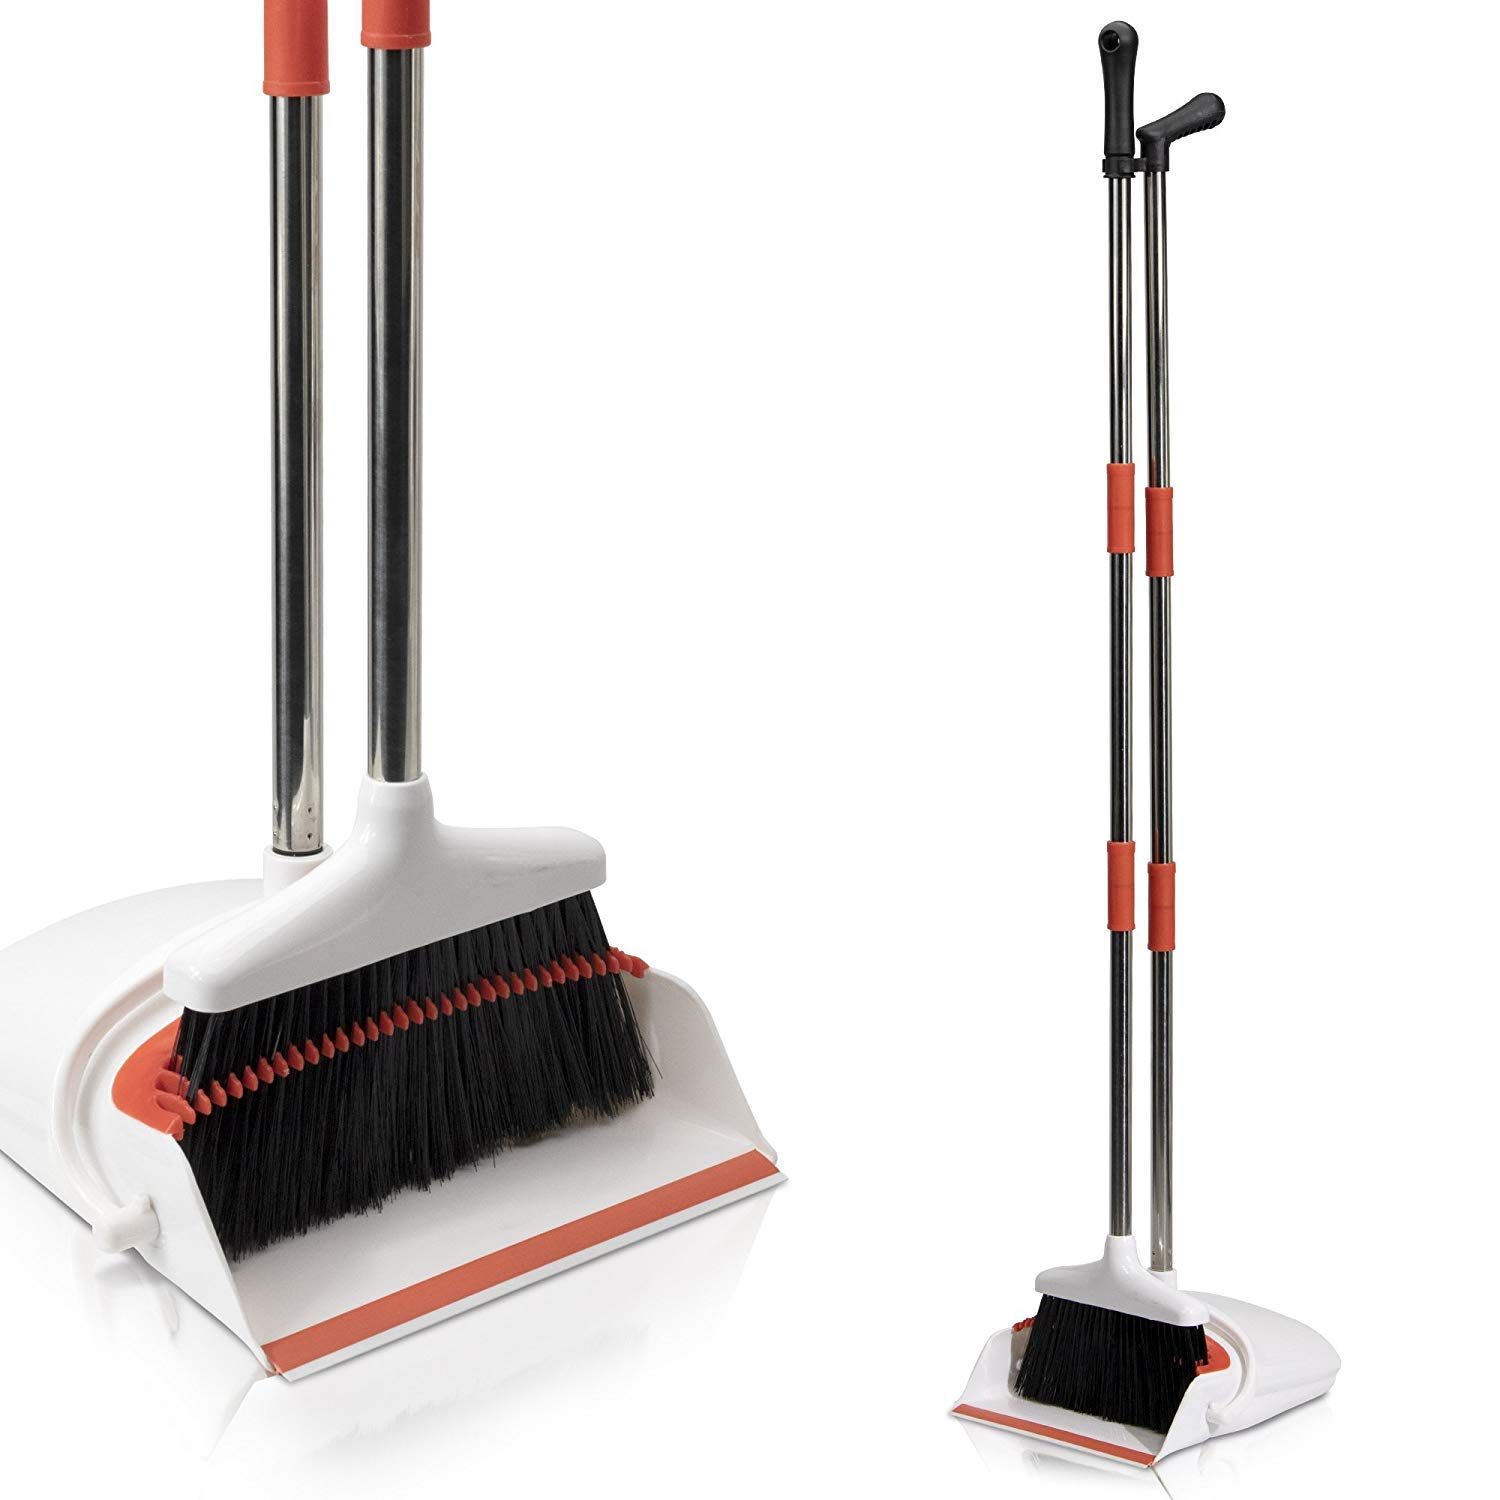 Primica Broom and Dustpan Set – Self-Cleaning Broom Bristles – Ideal Kitchen, Home and Lobby Broom and Dustpan Combo – Premium Brush, Wisp and Dust Cleaner